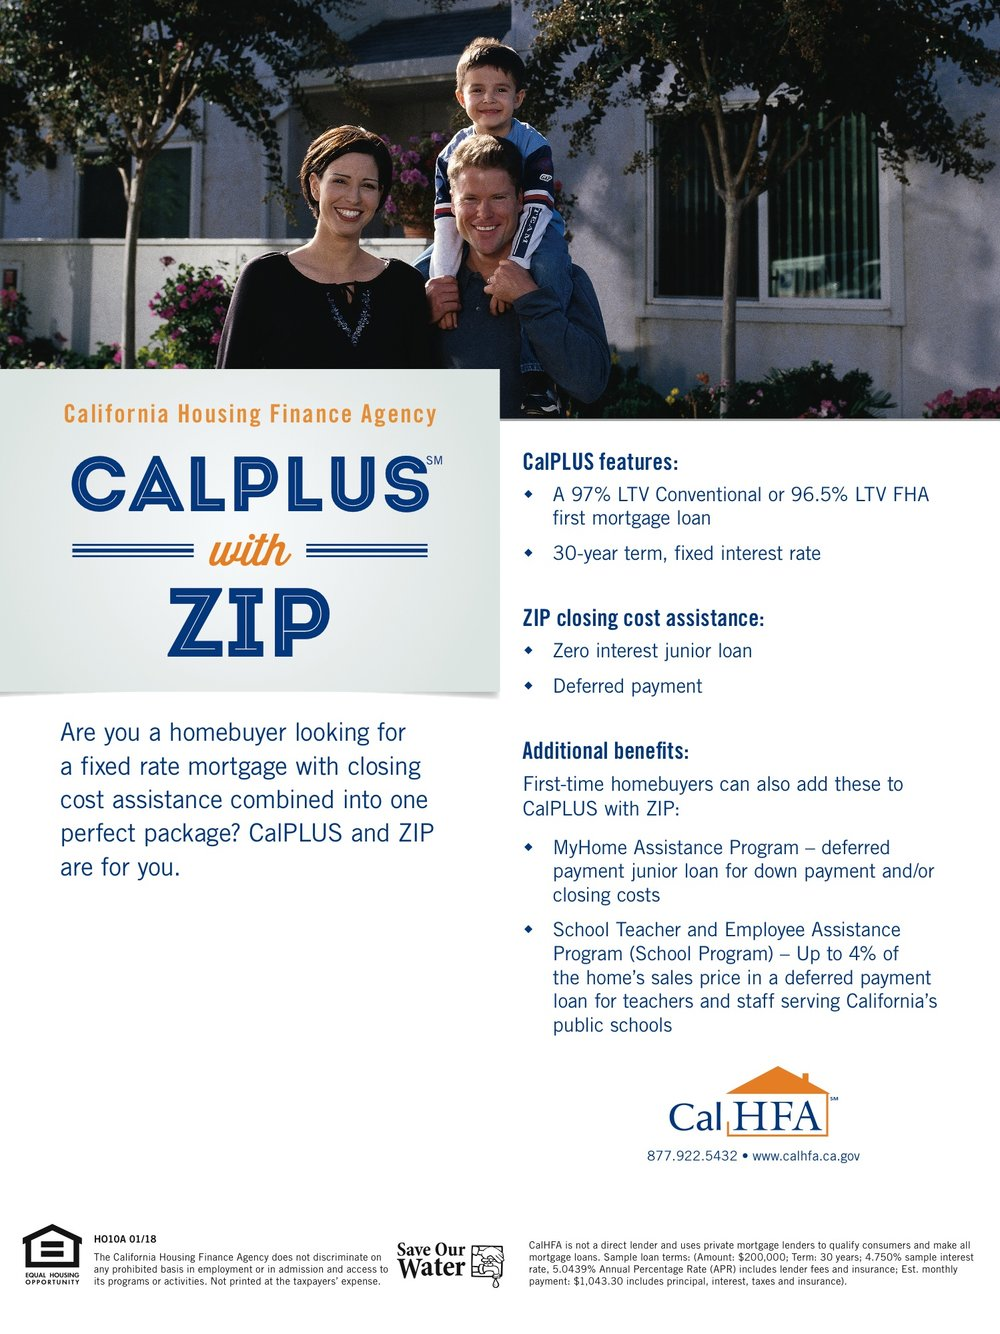 CalPLUS with ZIP - Closing cost assistance combined with a fixed rate mortgage...